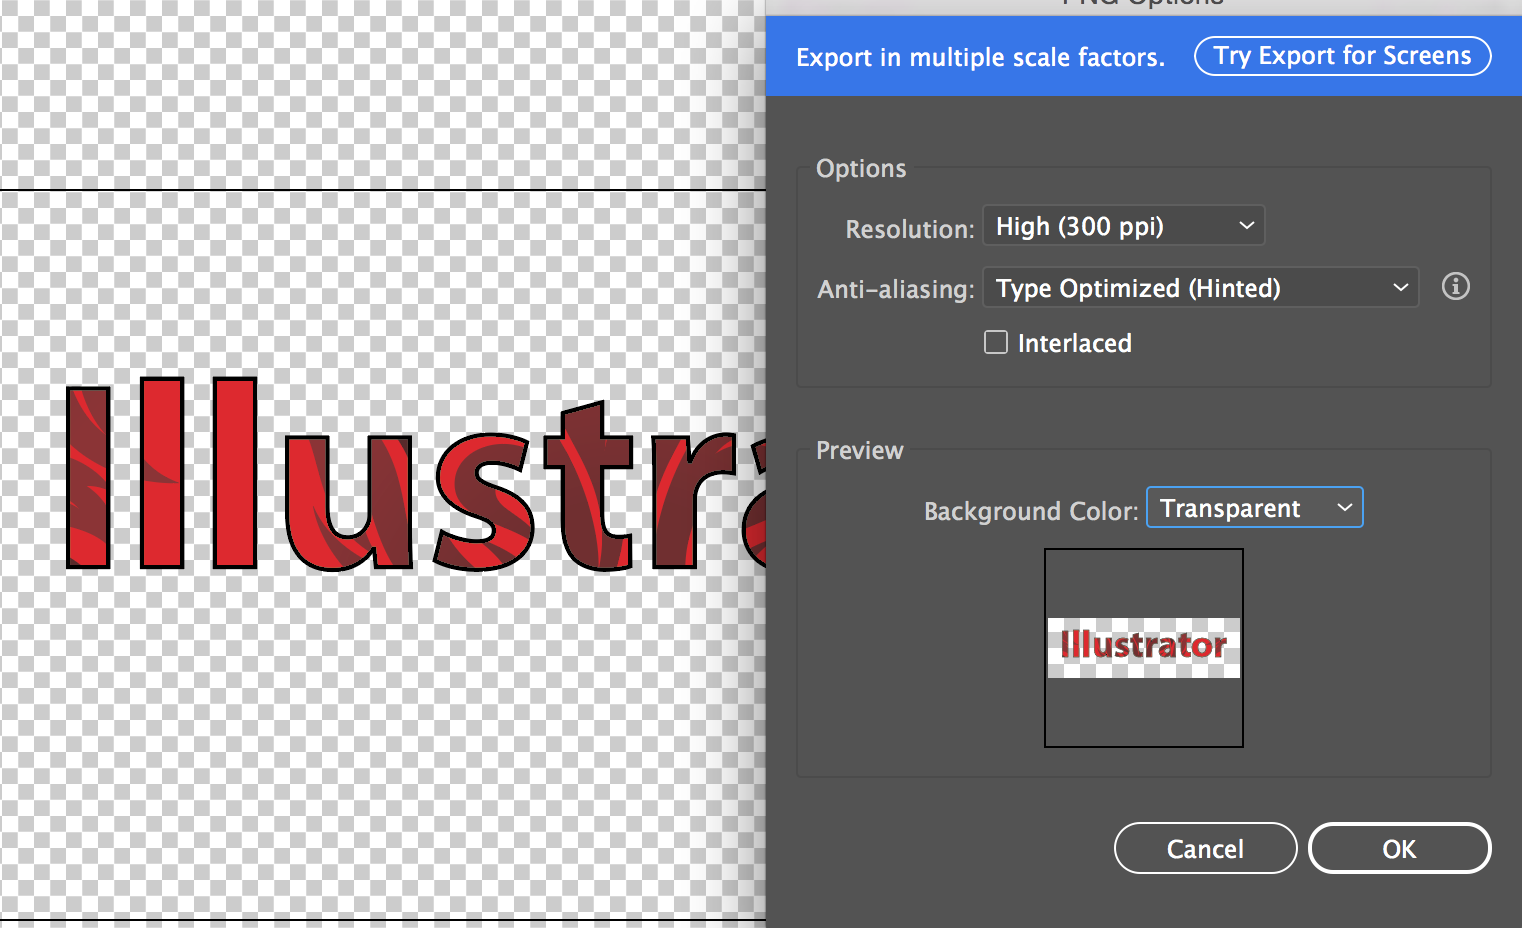 Illustrator duplicating image/layers when exportin.